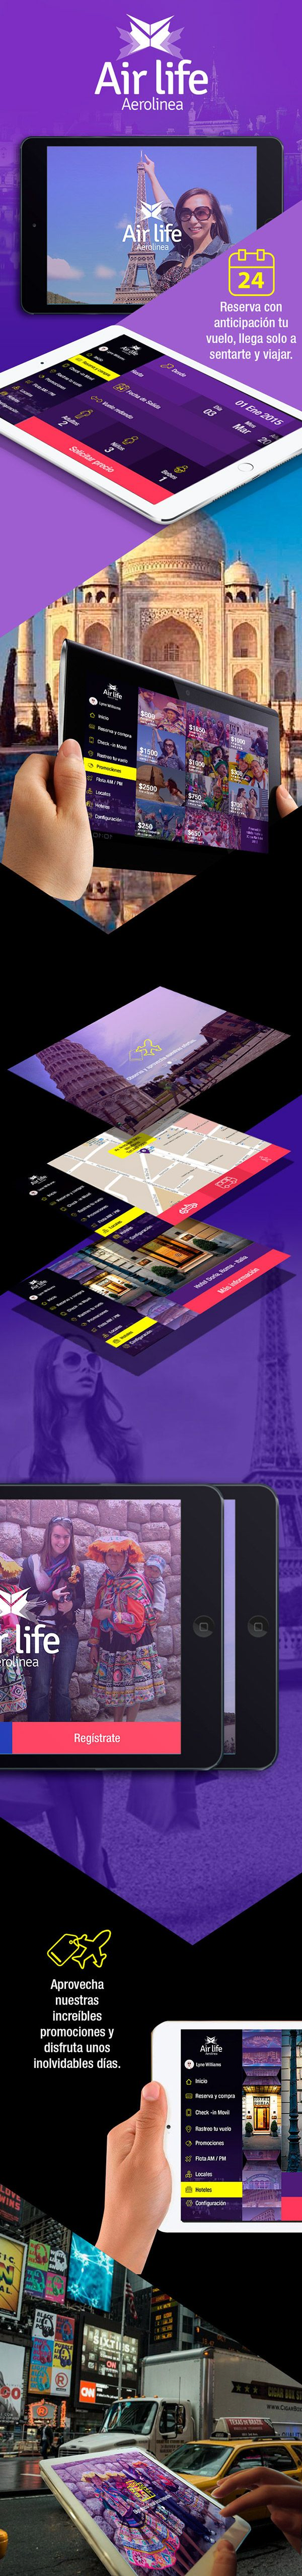 Resultados: CURSO DISEÑO DE INTERFACES MOBILE 2015-I on Behance